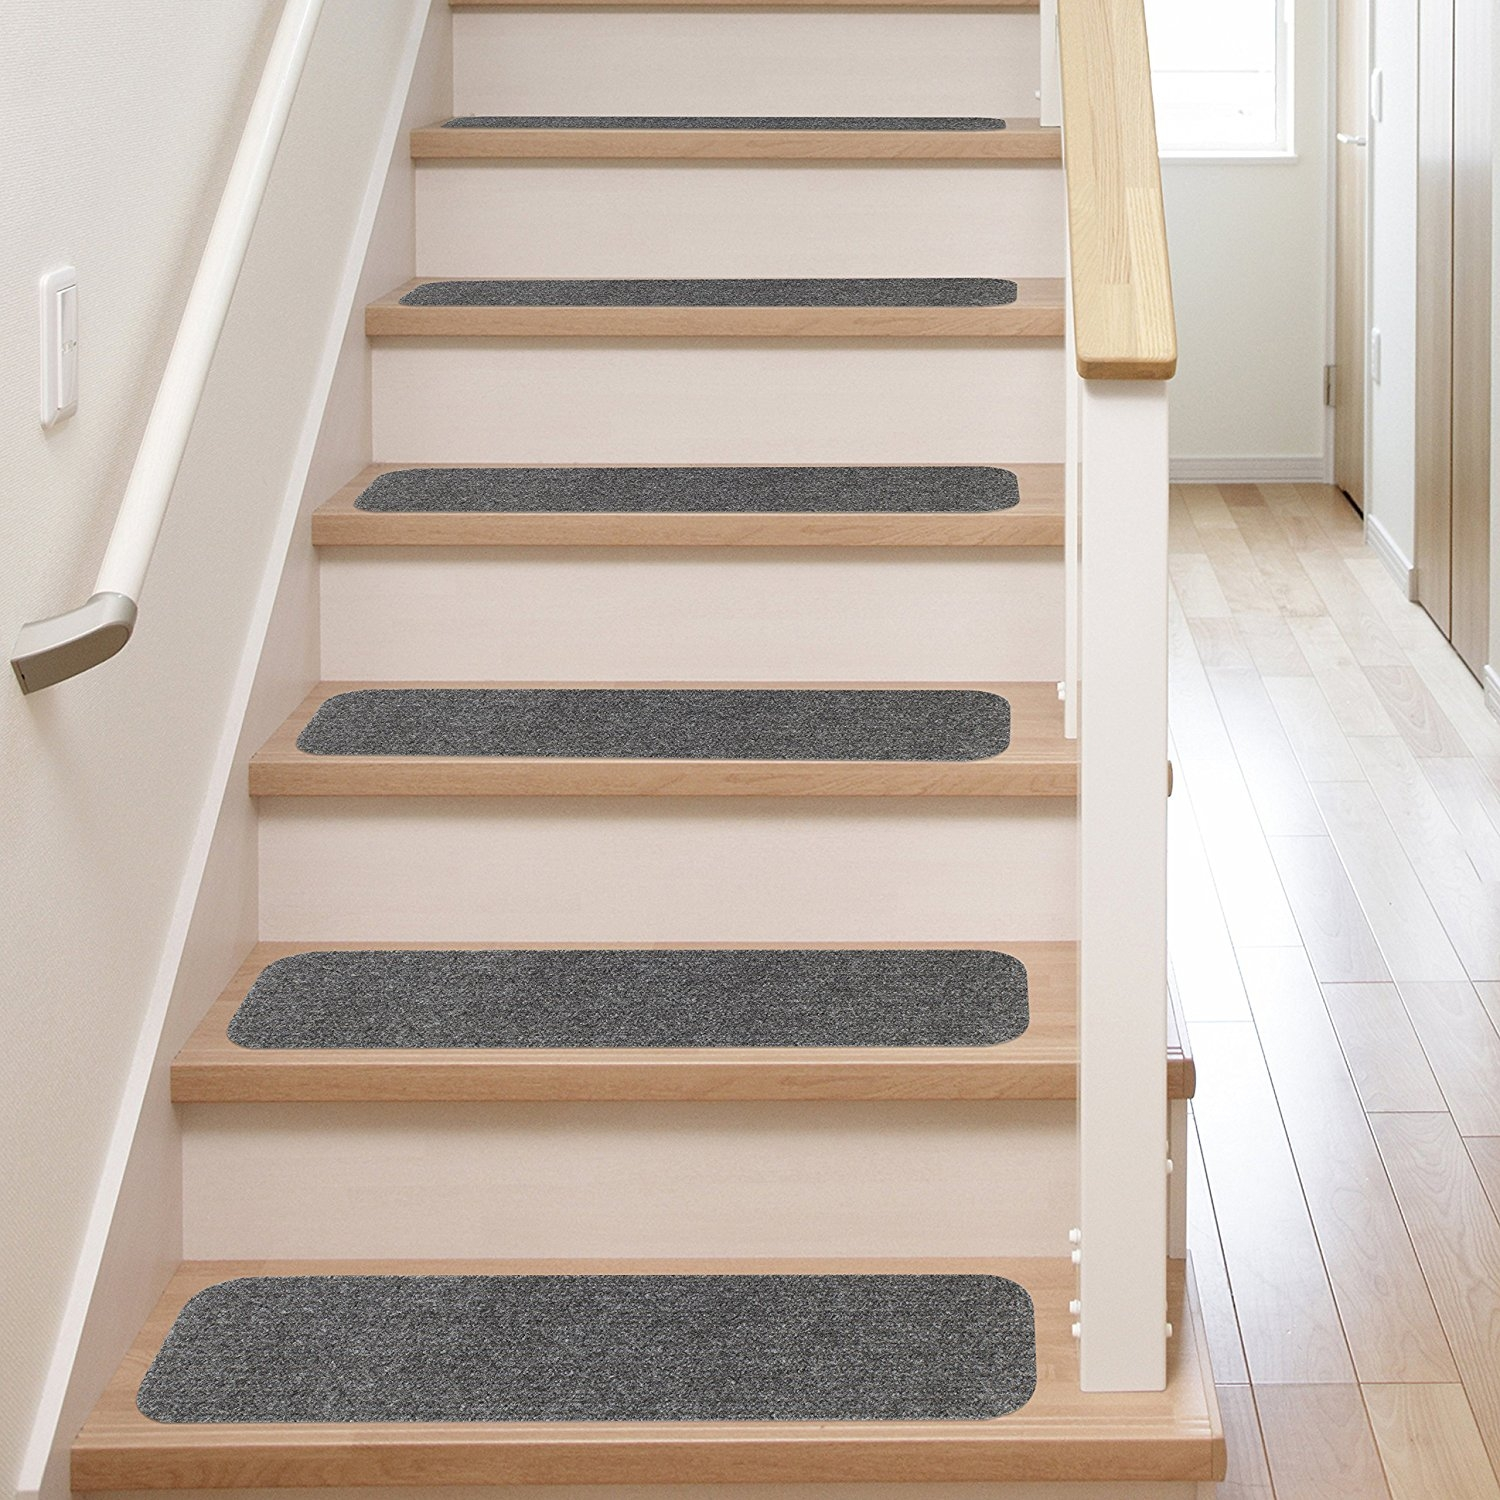 13 Stair Treads Non Slip Carpet Pads Easy Tape Installation Throughout Stair Tread Rug Liners (View 4 of 20)